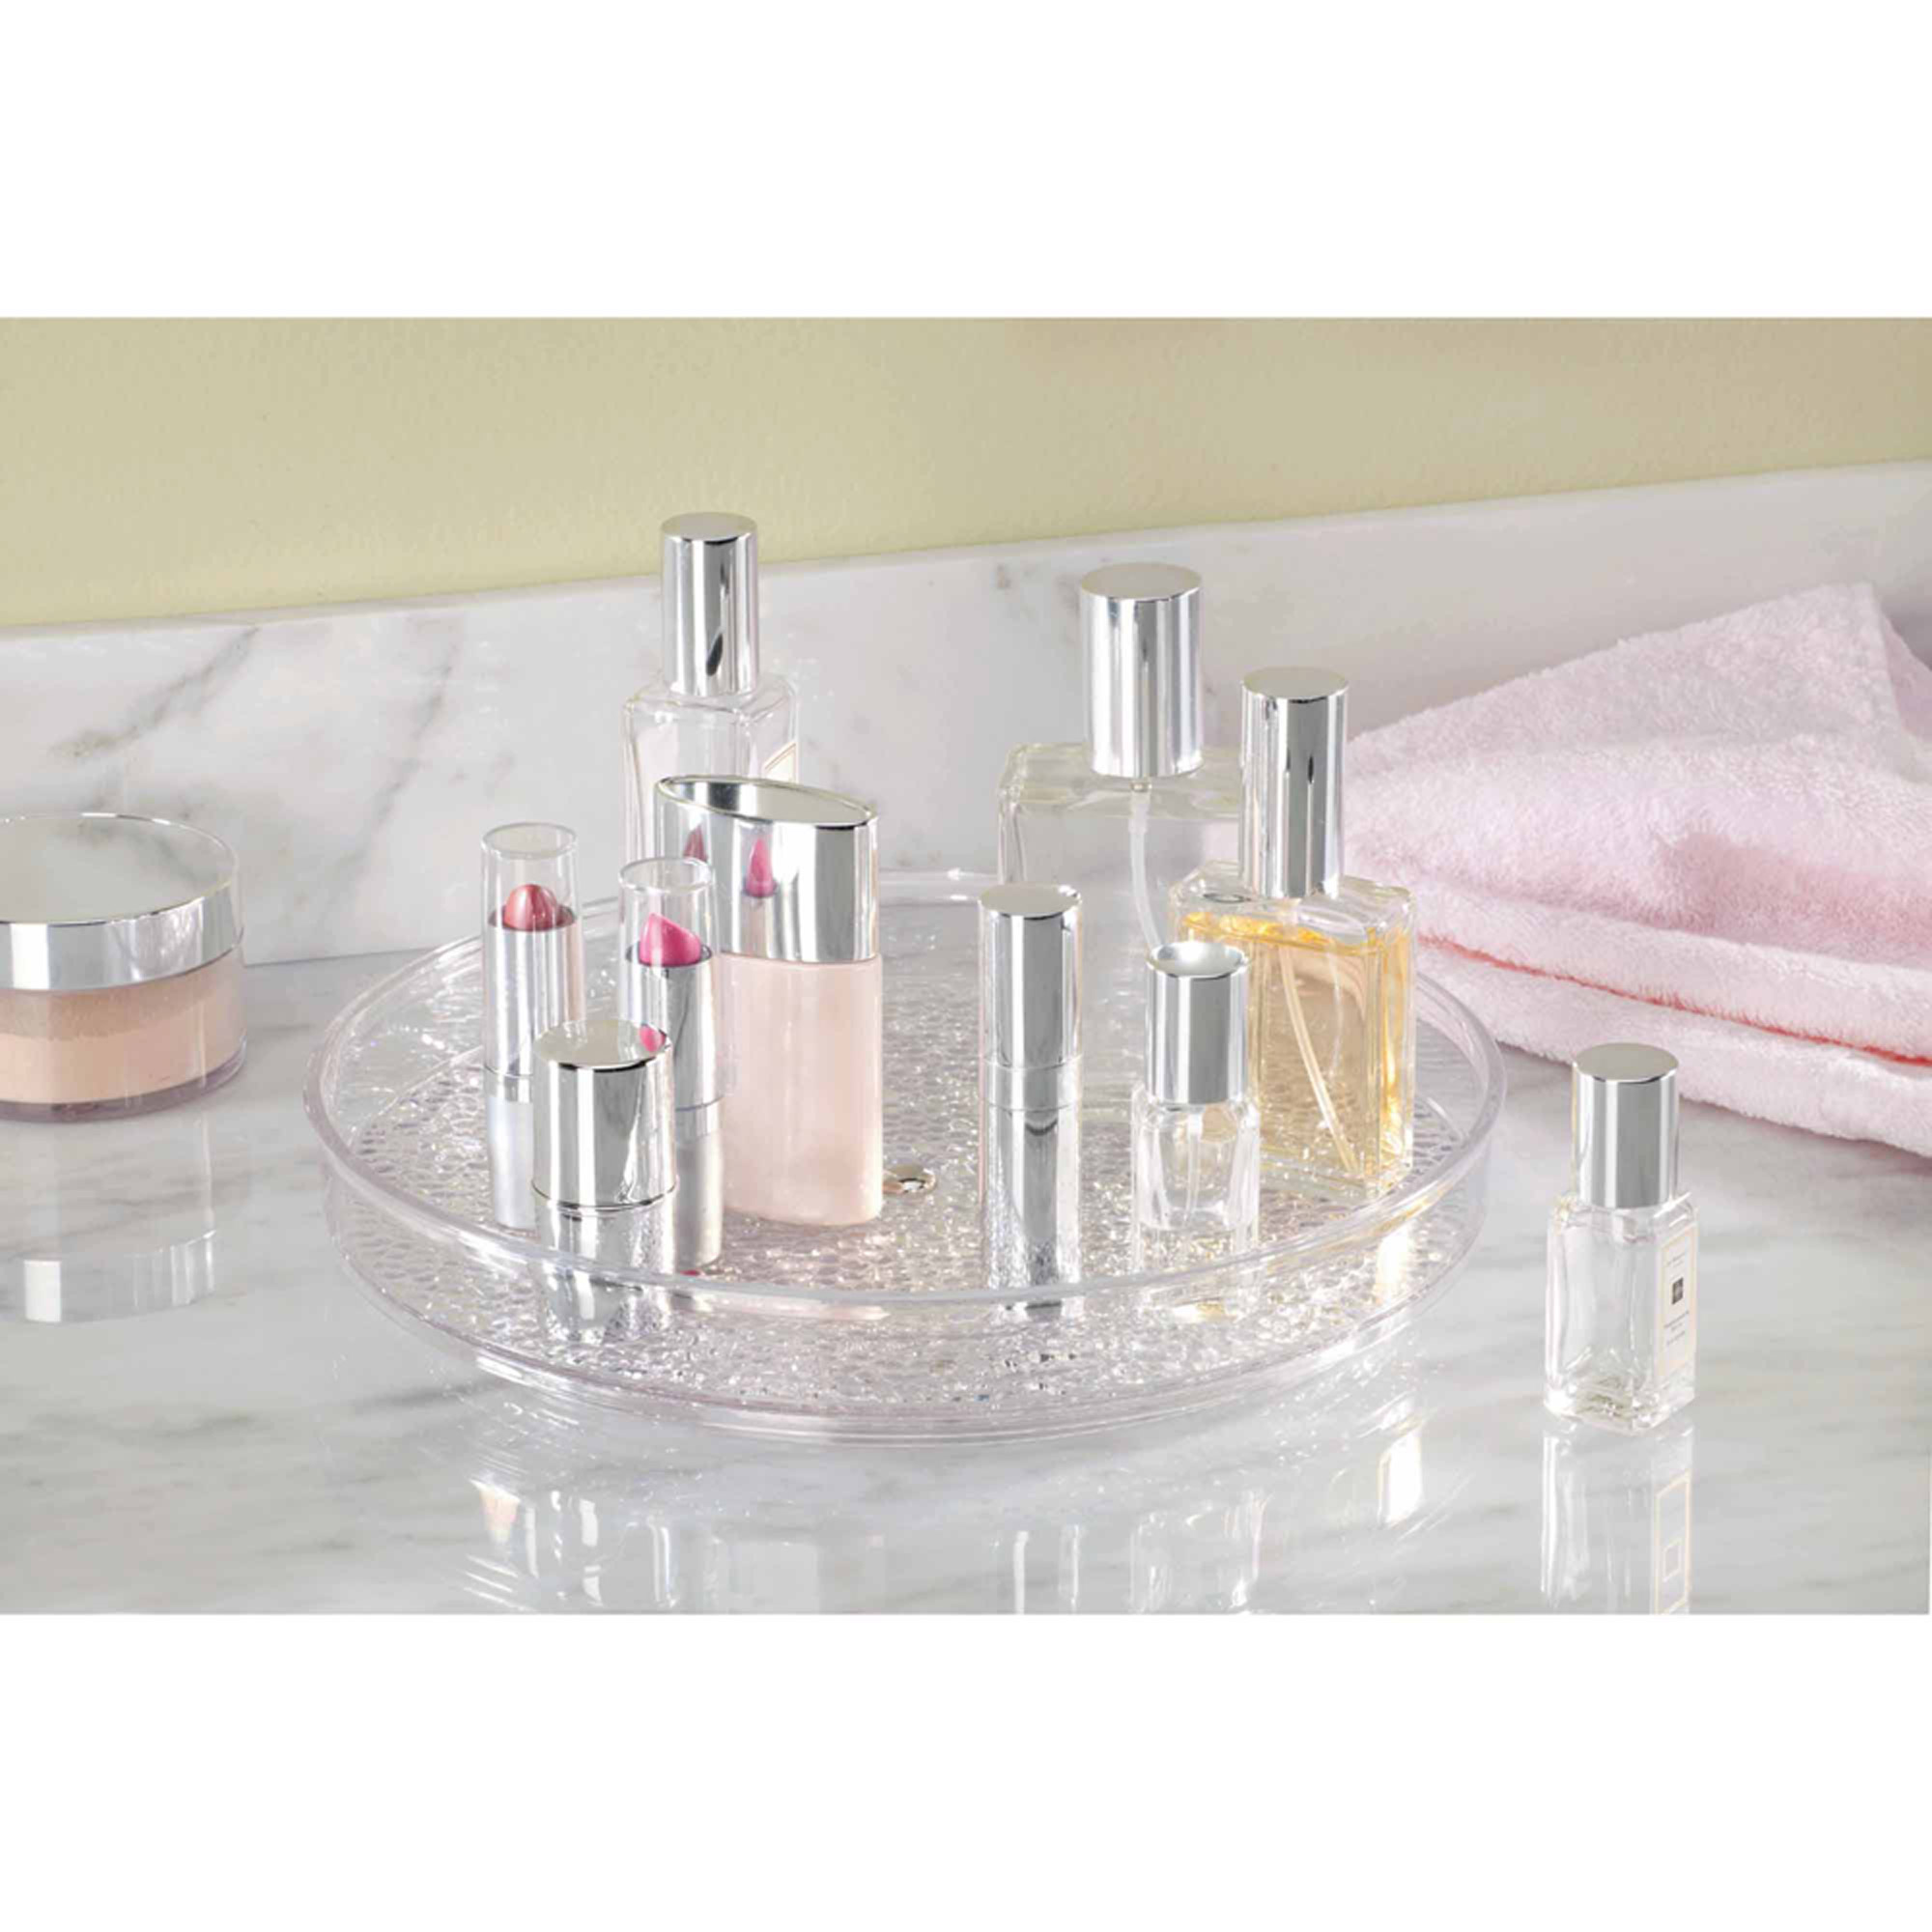 Makeup Acrylic organizer walmart best photo